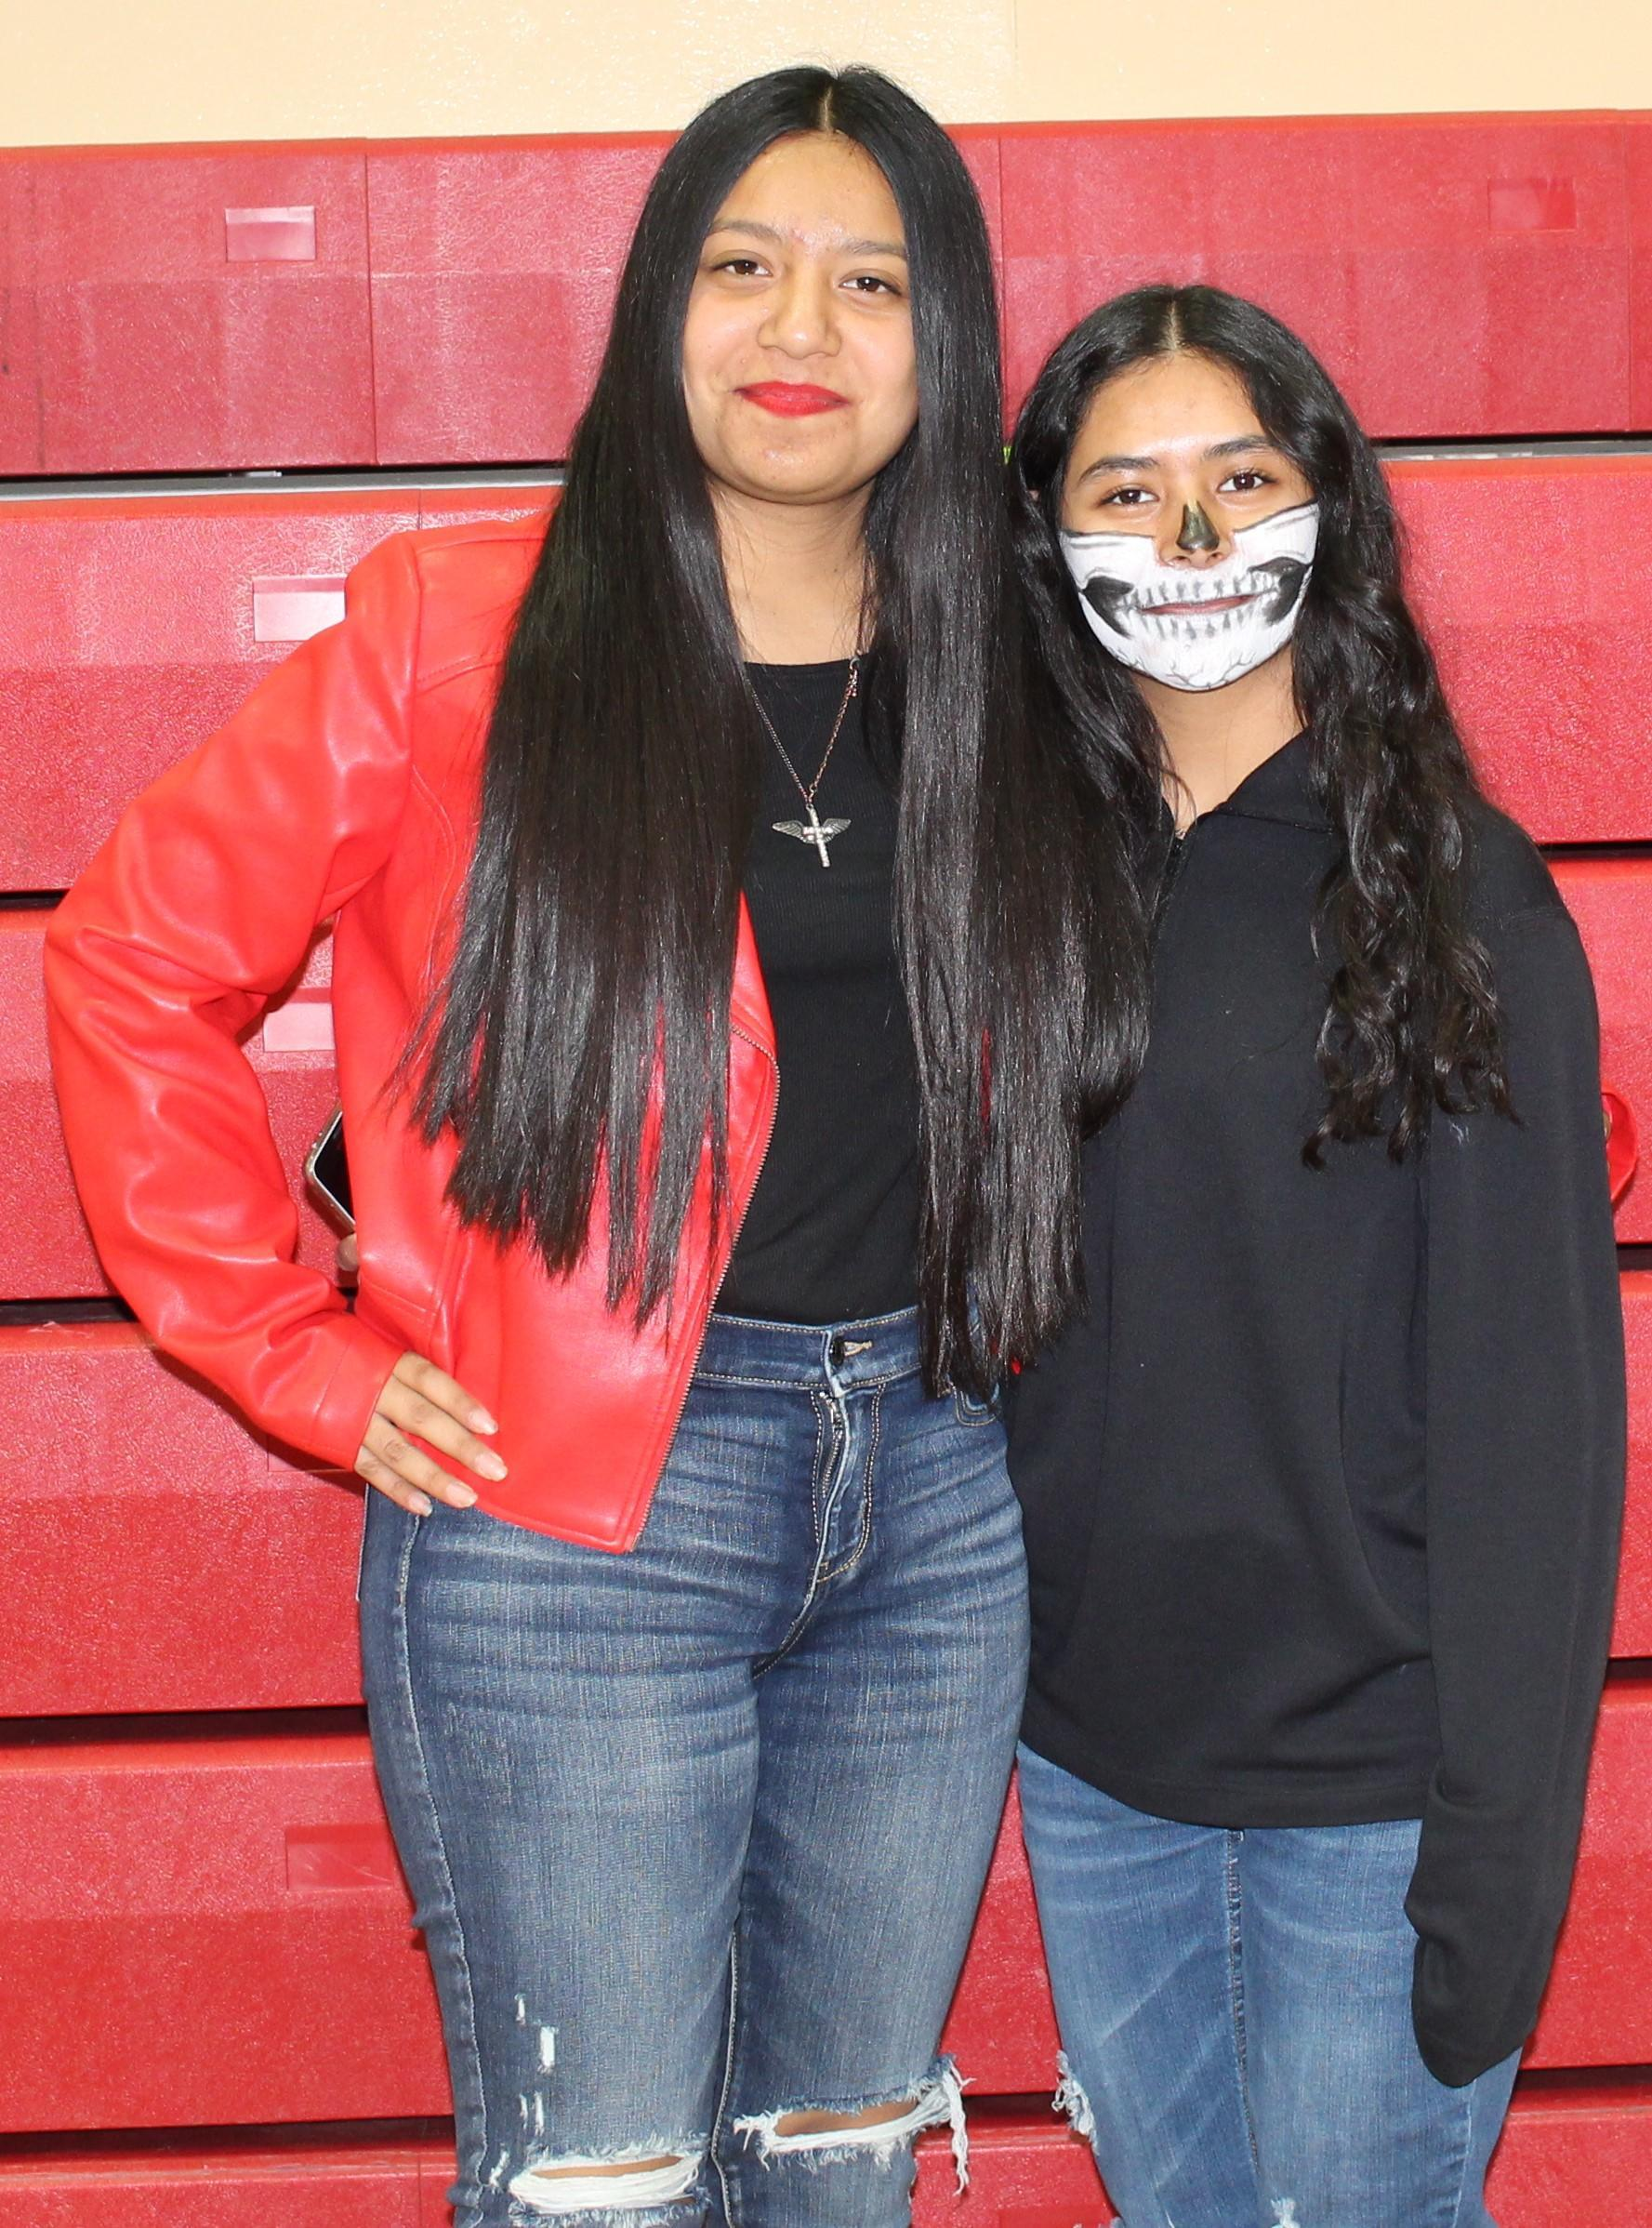 Isadora Flores as Micheal Jackson and Emily Rojas as a skeleton